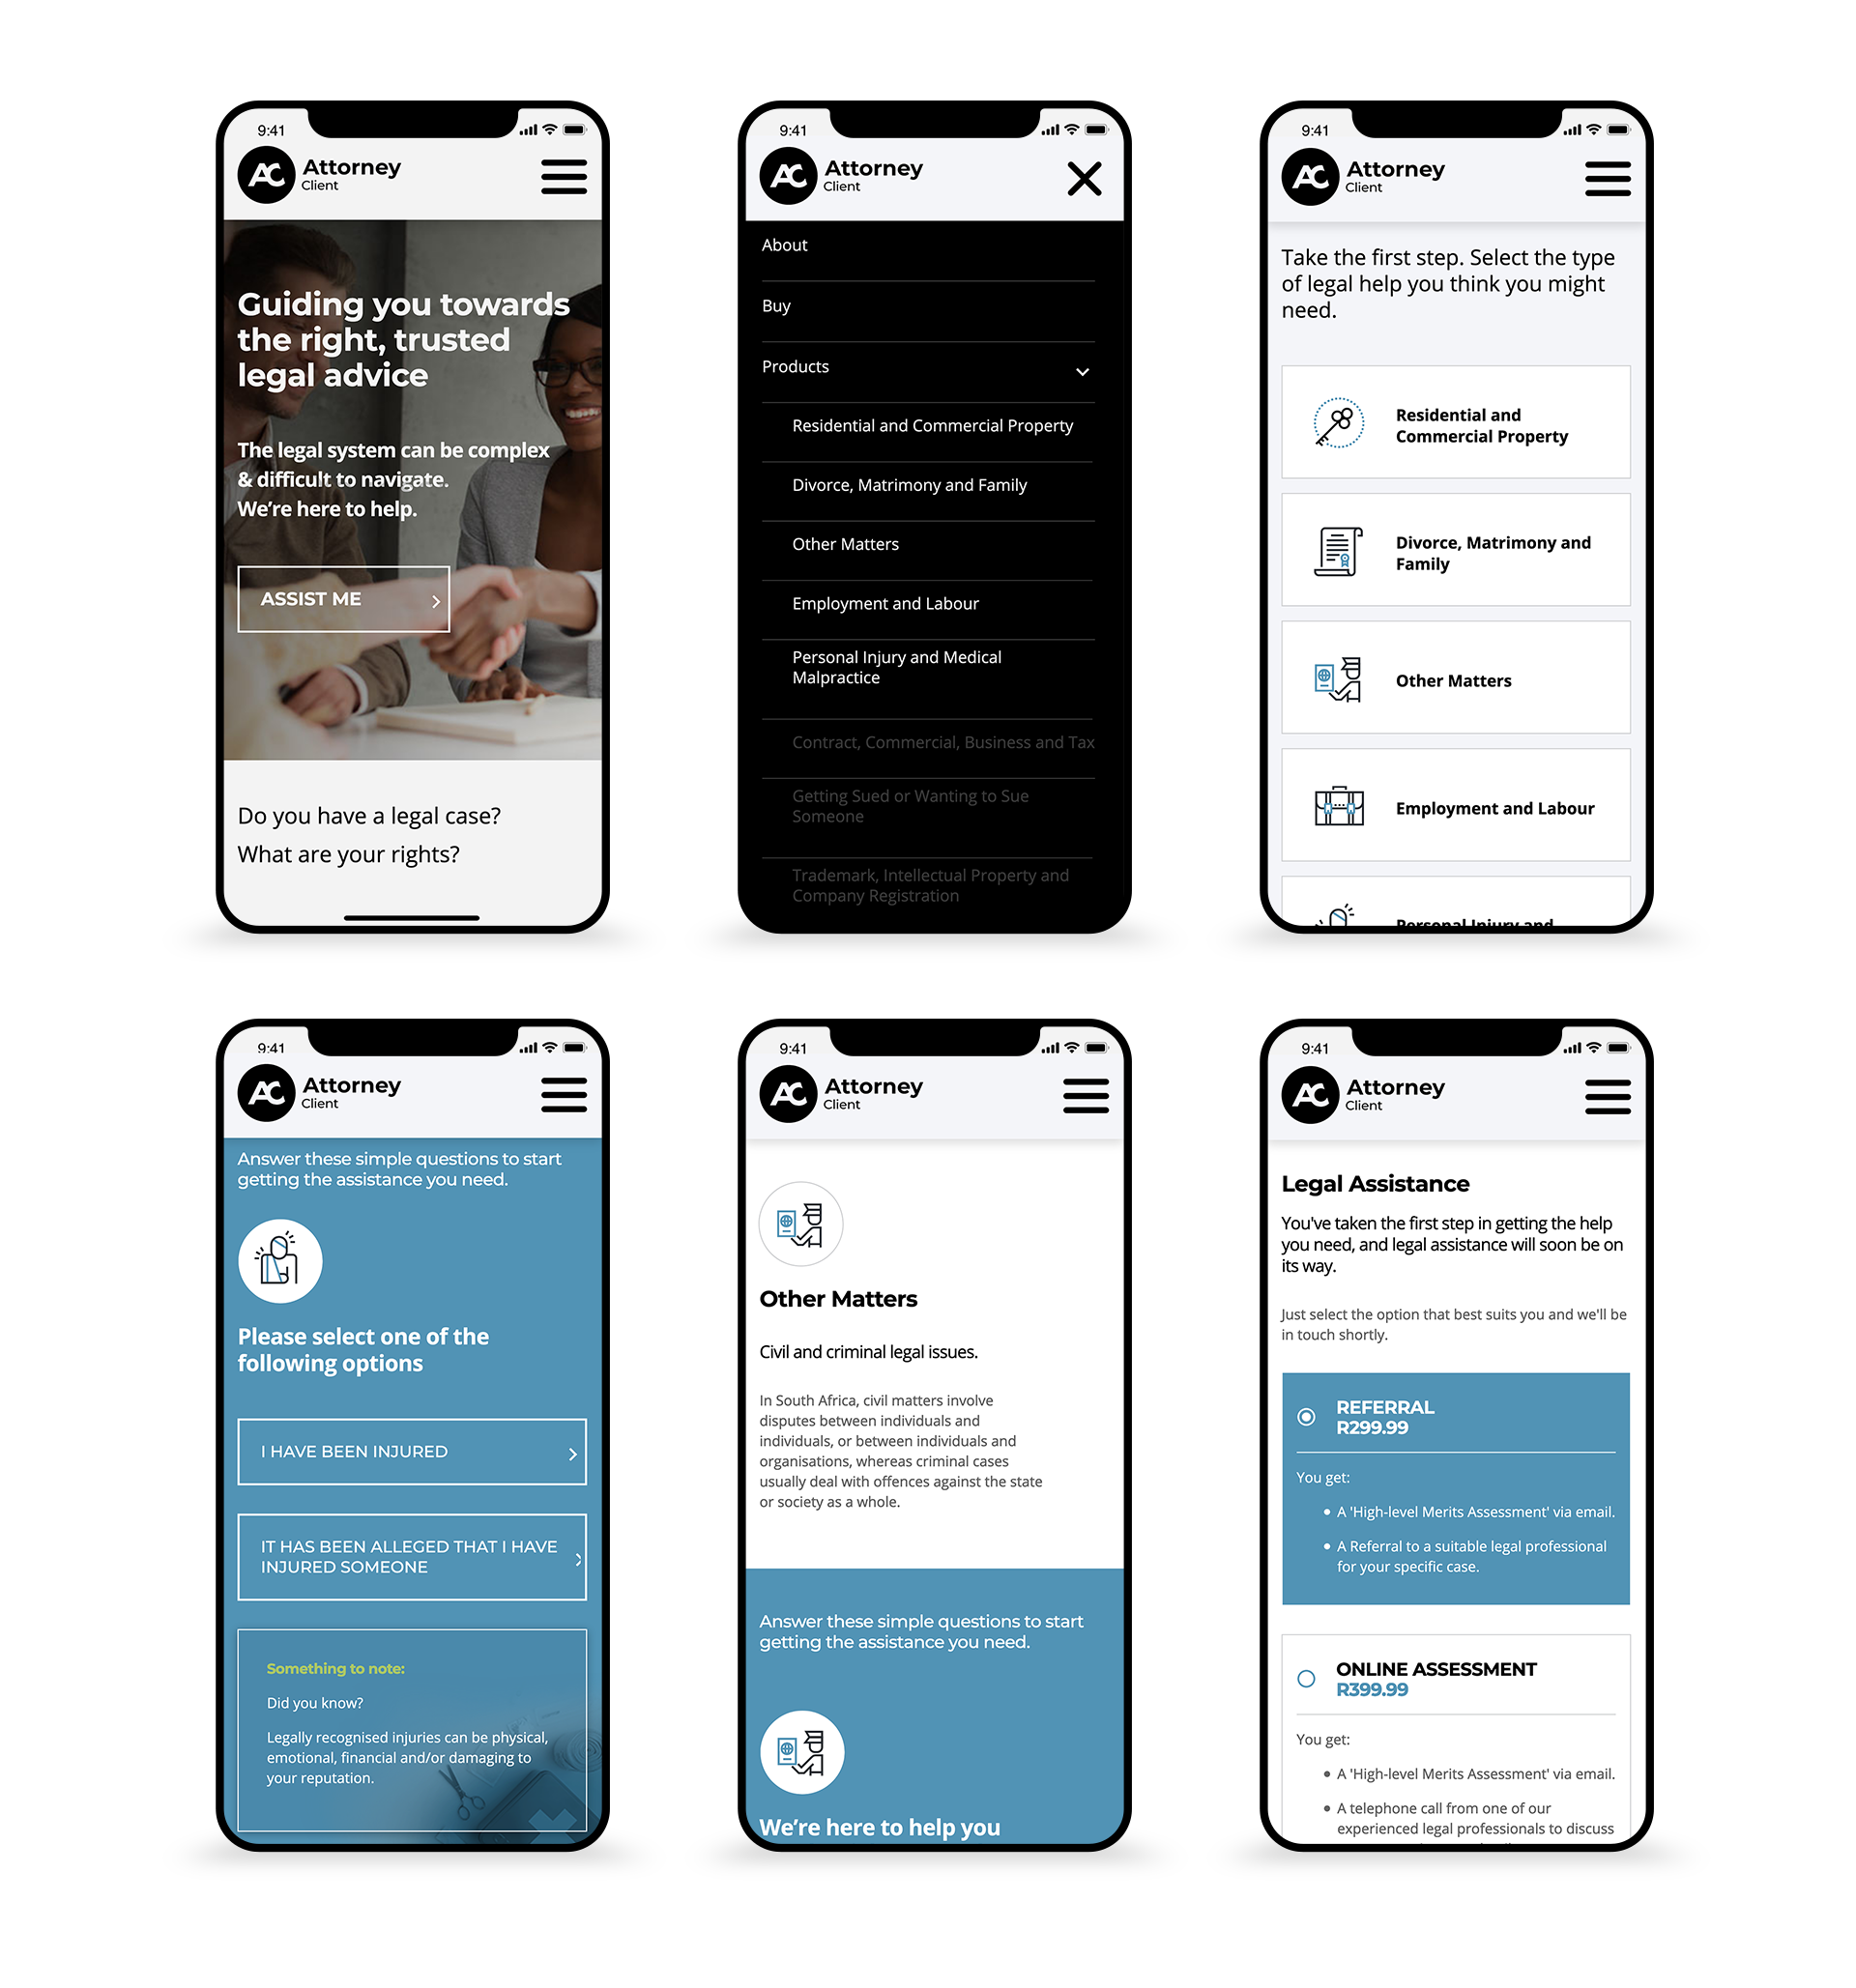 AttorneyClient-iphone_mockup